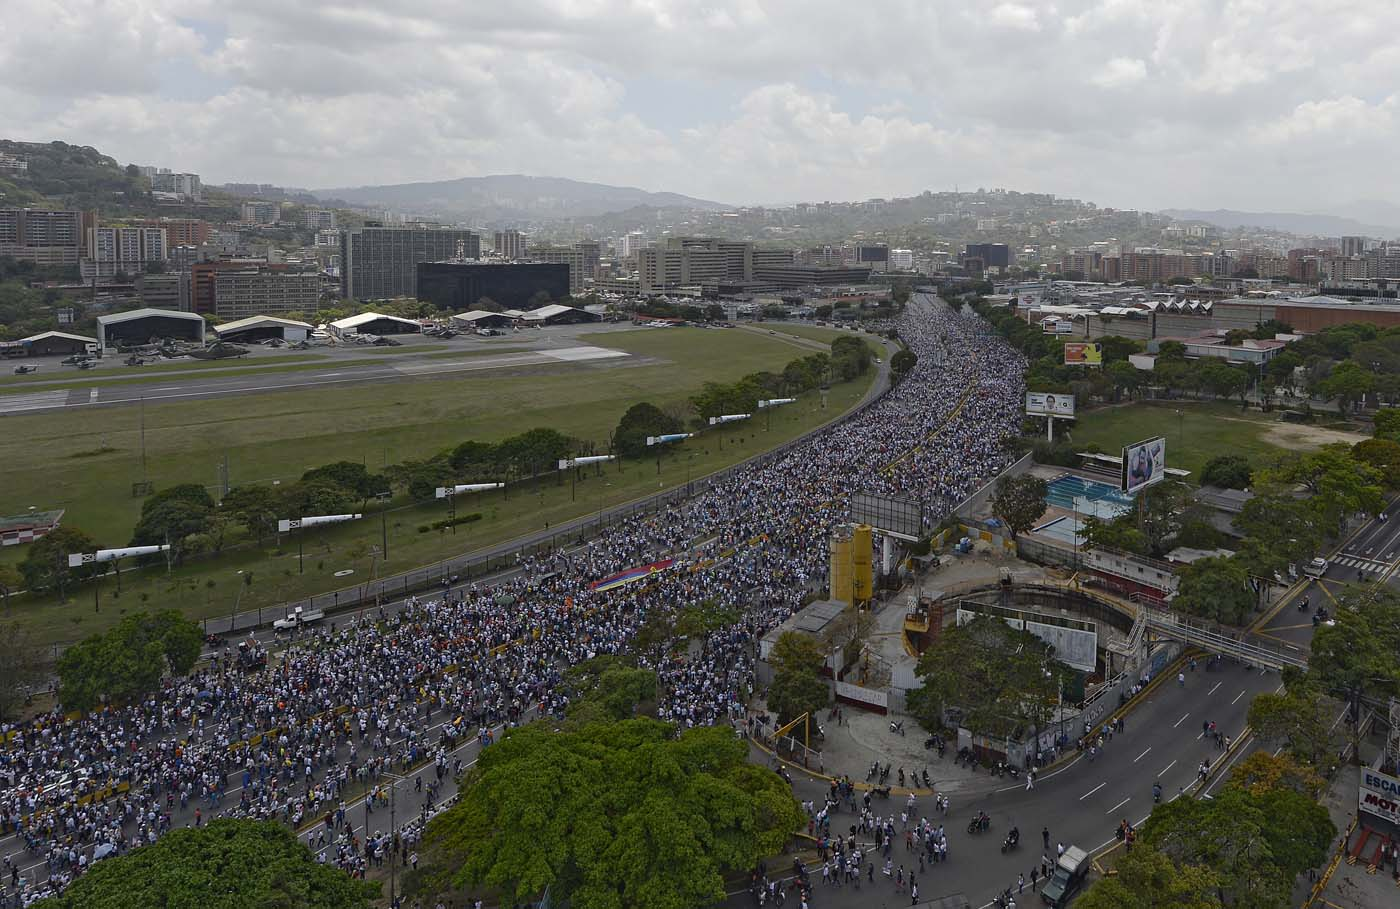 Venezuelan opposition activists gather to protest against the government of President Nicolas Maduro on April 6, 2017 in Altamira,  Chacao municipality, eastern Caracas. The center-right opposition vowed fresh street protests -after earlier unrest left dozens of people injured - to increase pressure on Maduro, whom they blame for the country's economic crisis. / AFP PHOTO / FEDERICO PARRA